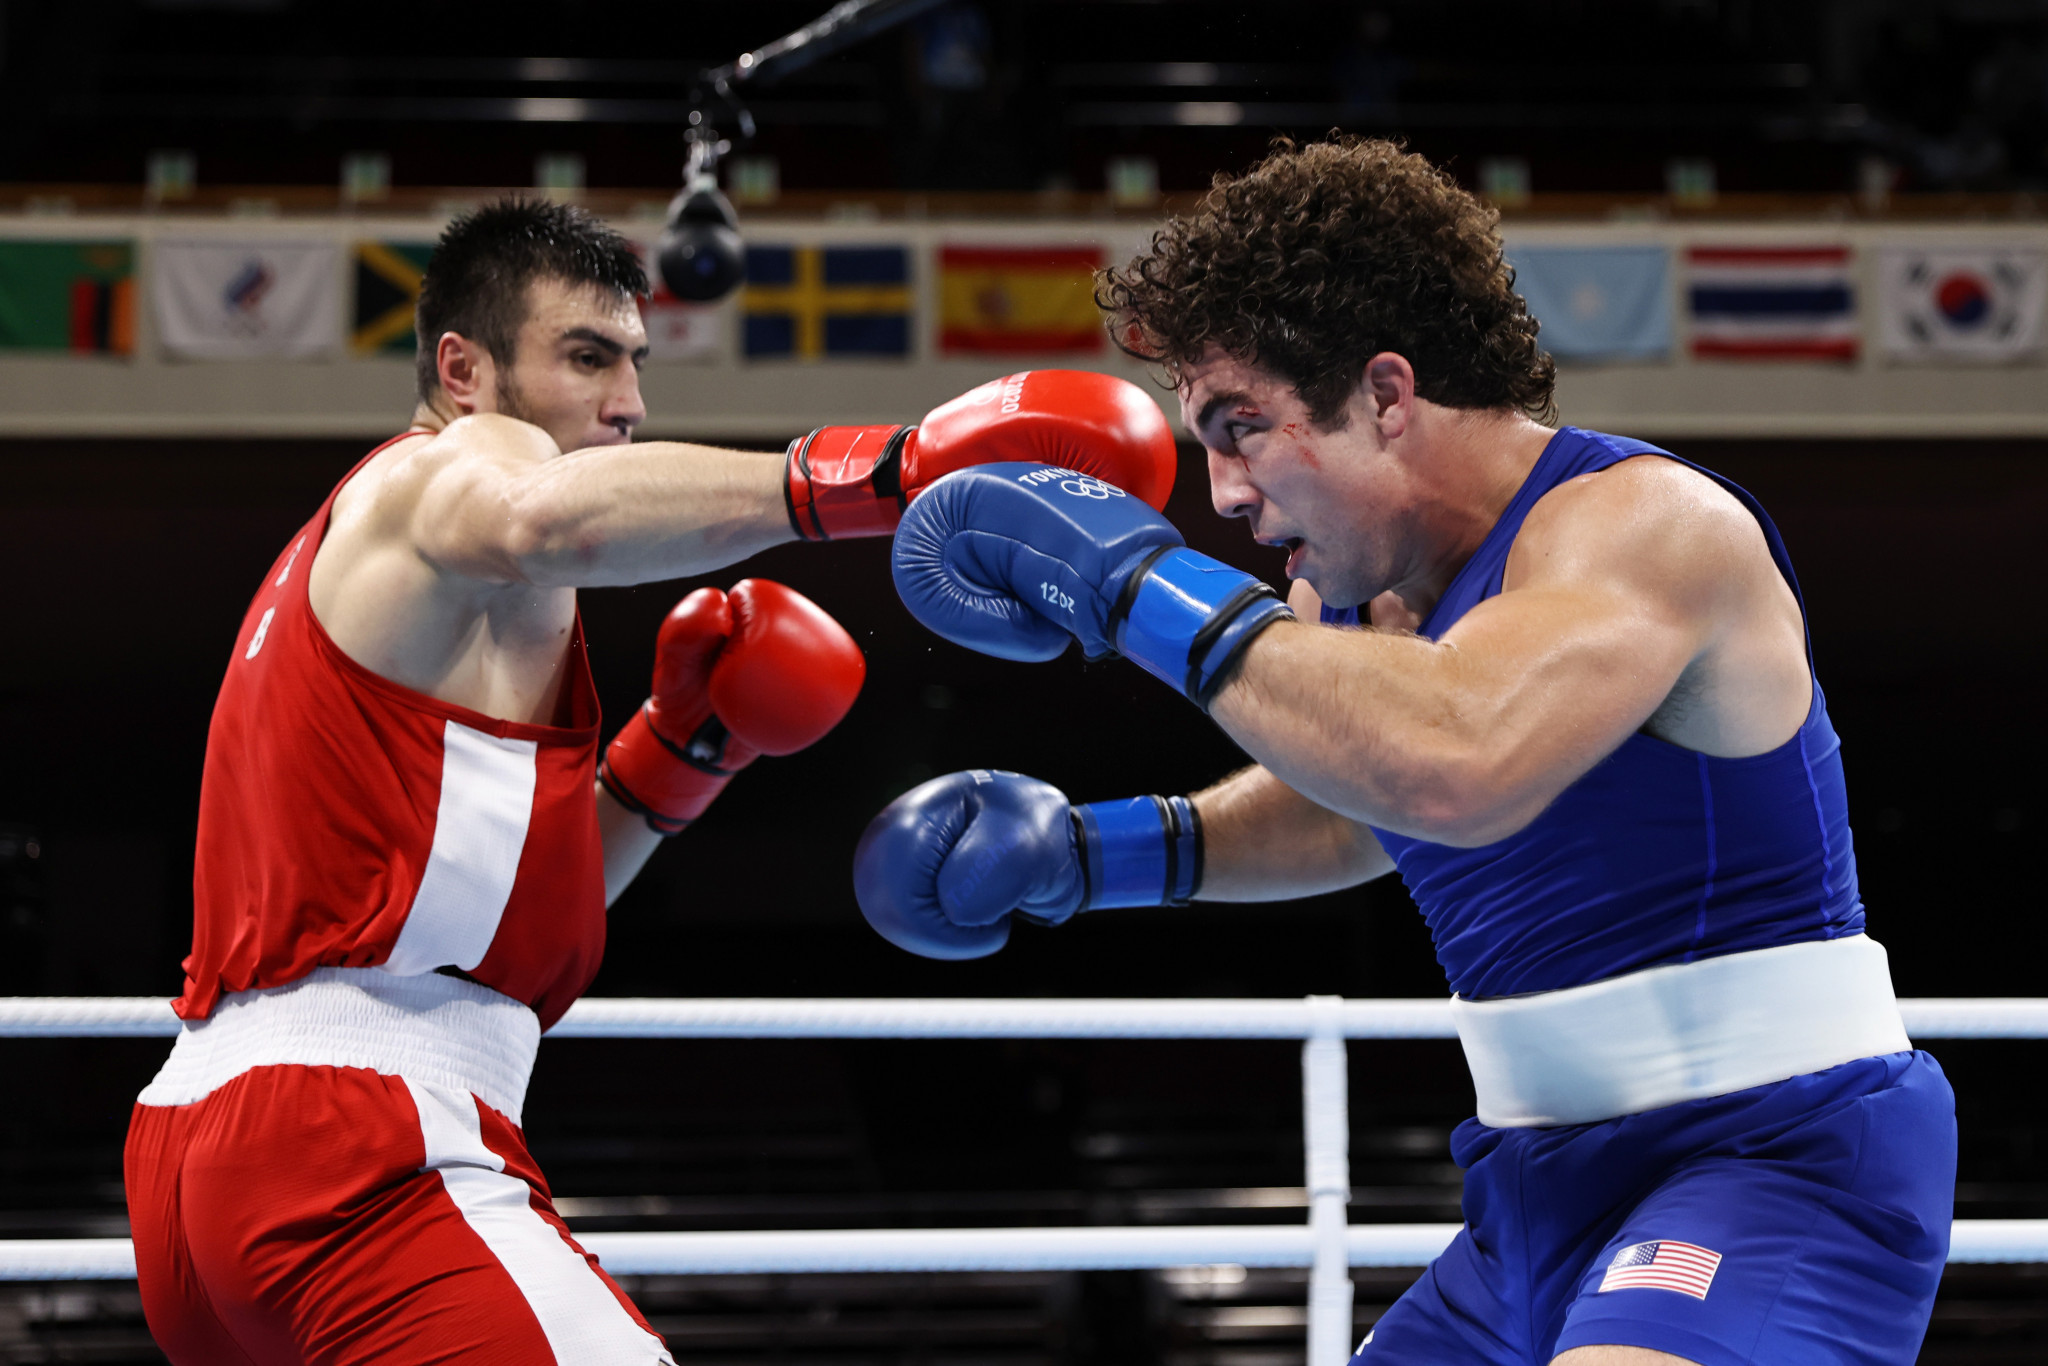 Bakhodir Jalalov, in red, won the men's super-heavy boxing category after defeating Richard Torrez Jr of the United States ©Getty Images